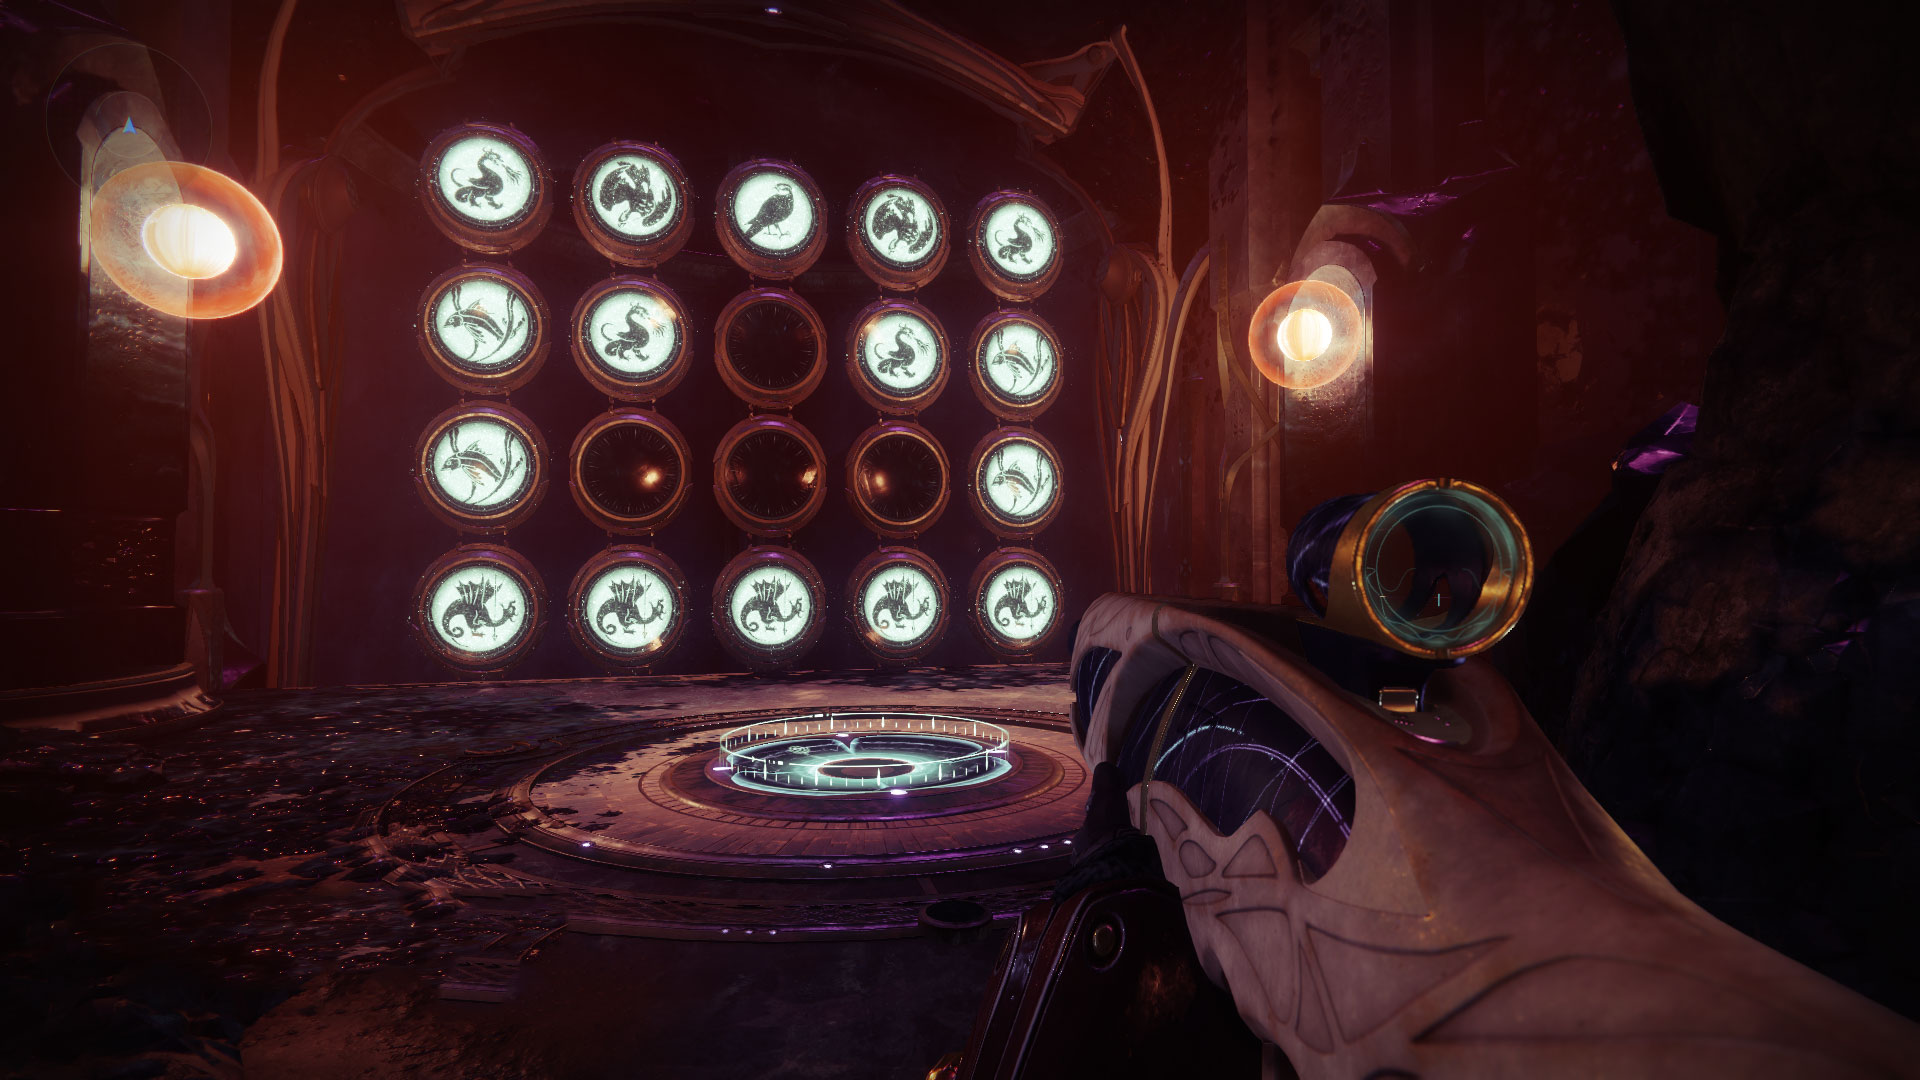 Destiny 2: Forsaken: How to make wishes in the Last Wish raid guide